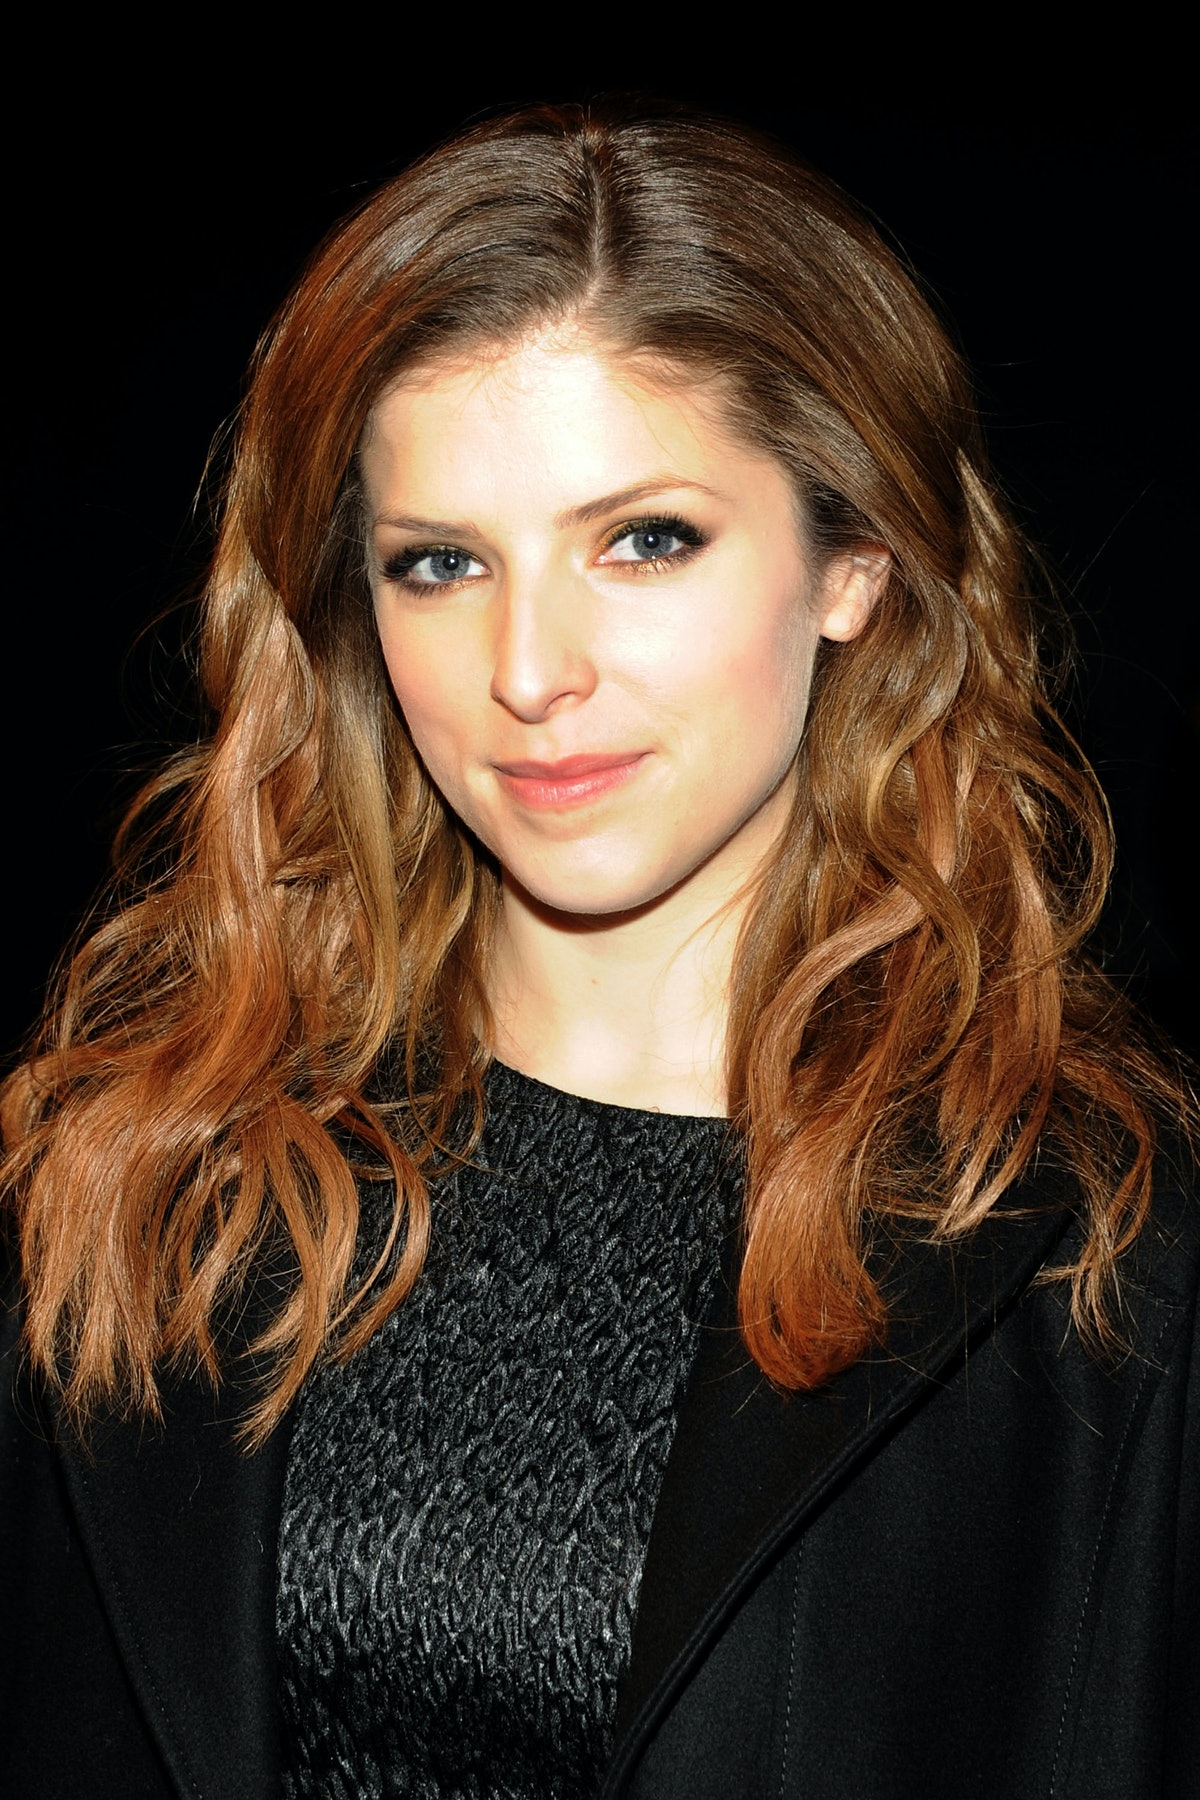 kendrick dating Who is anna kendrick dating many famous men have dated anna kendrick, and this list will give you more details about these lucky dudes including anna kendrick's c.